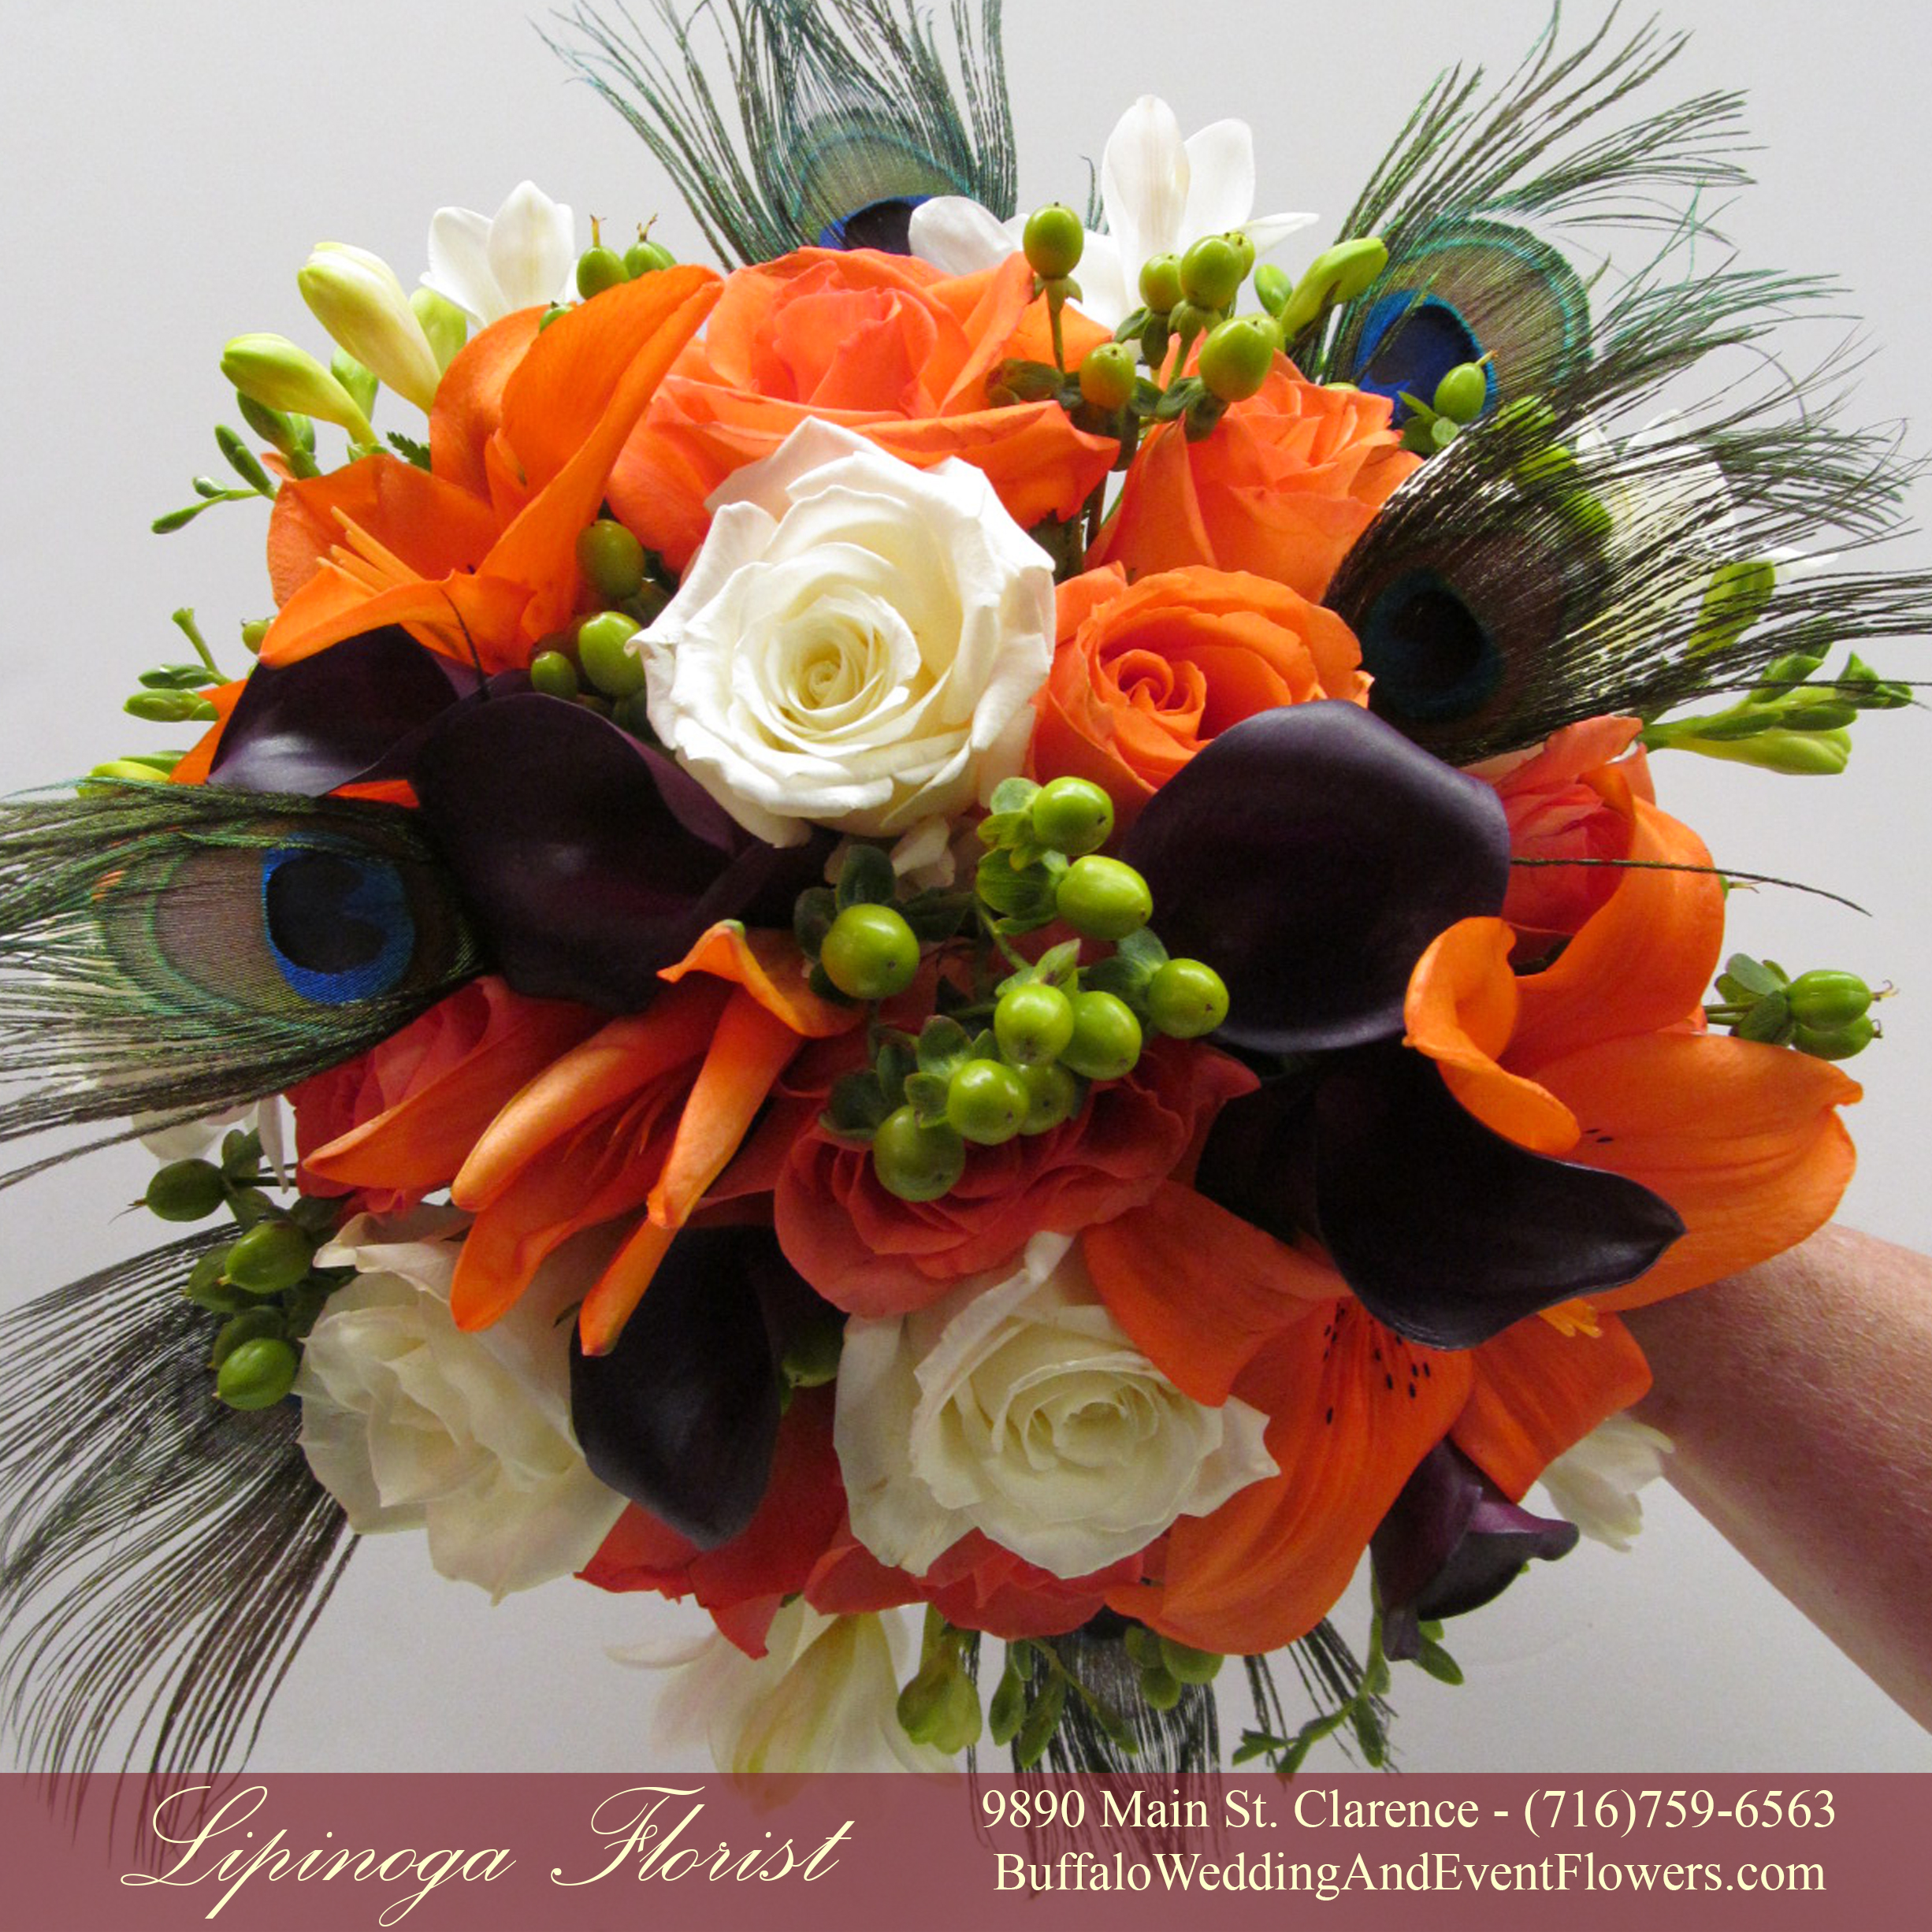 orange buffalo wedding event flowers by lipinoga florist. Black Bedroom Furniture Sets. Home Design Ideas